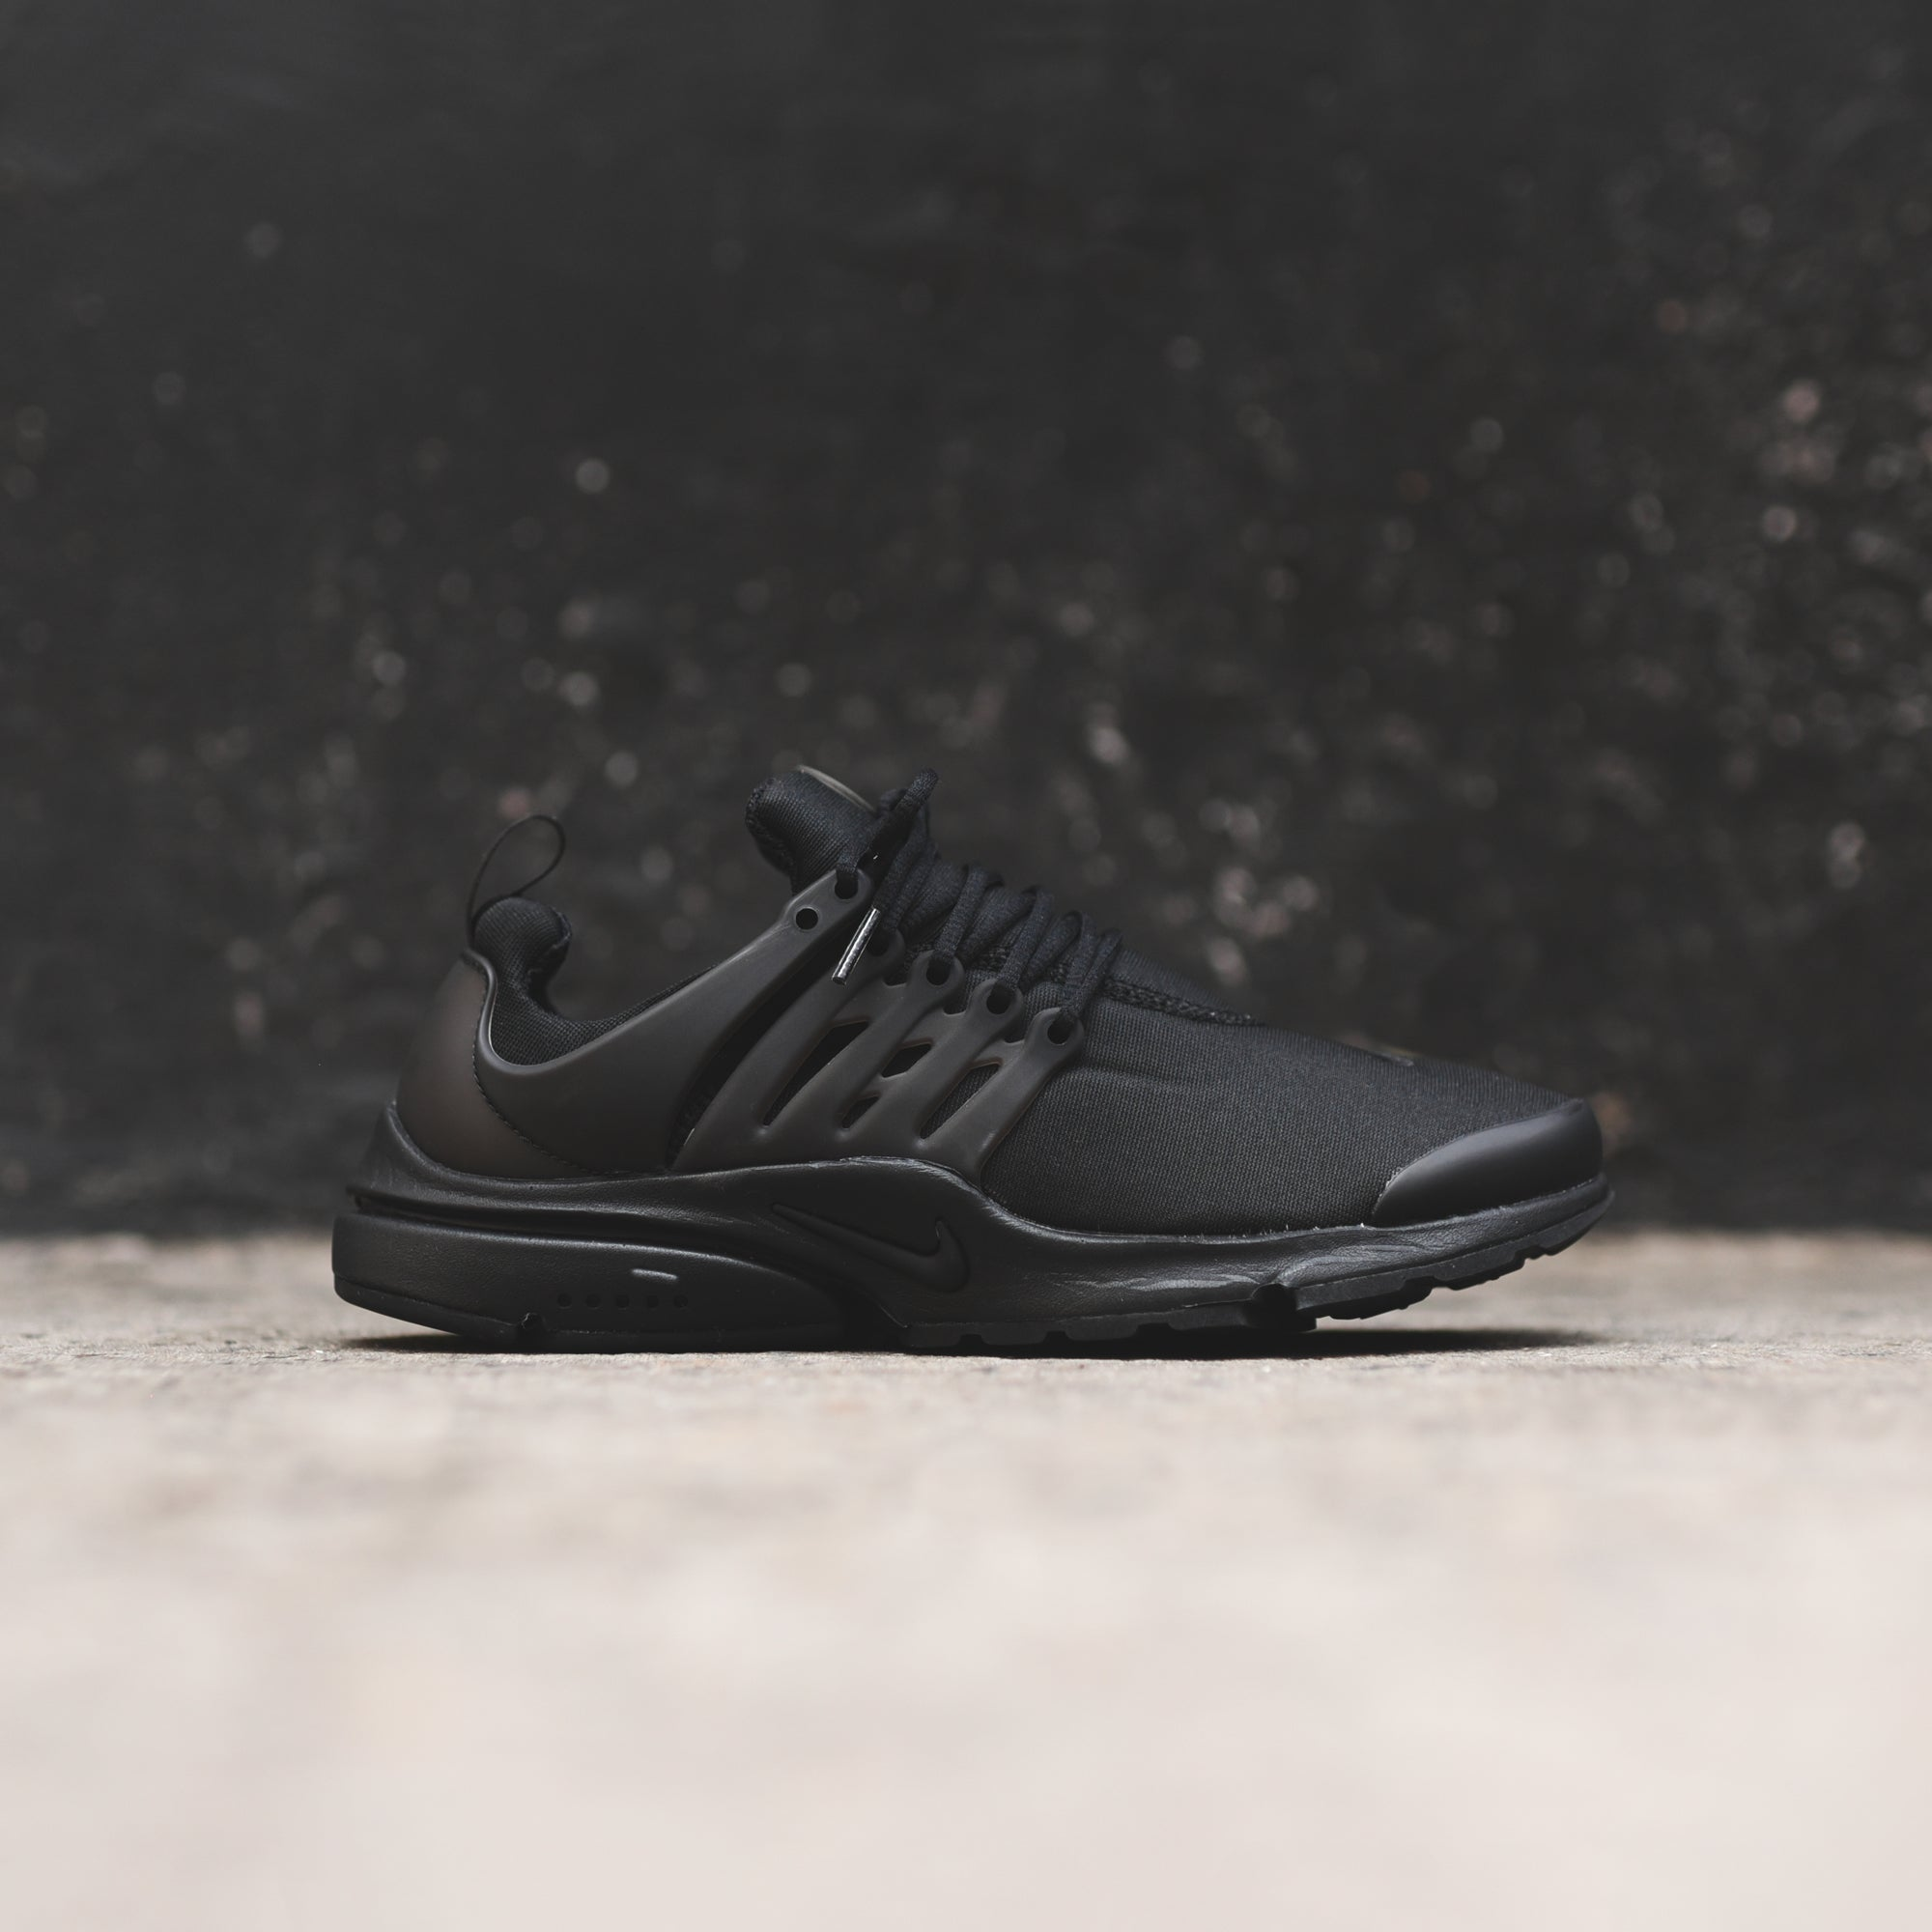 fc10c80f98e6 Nike Air Presto Essential - Triple Black. July 23